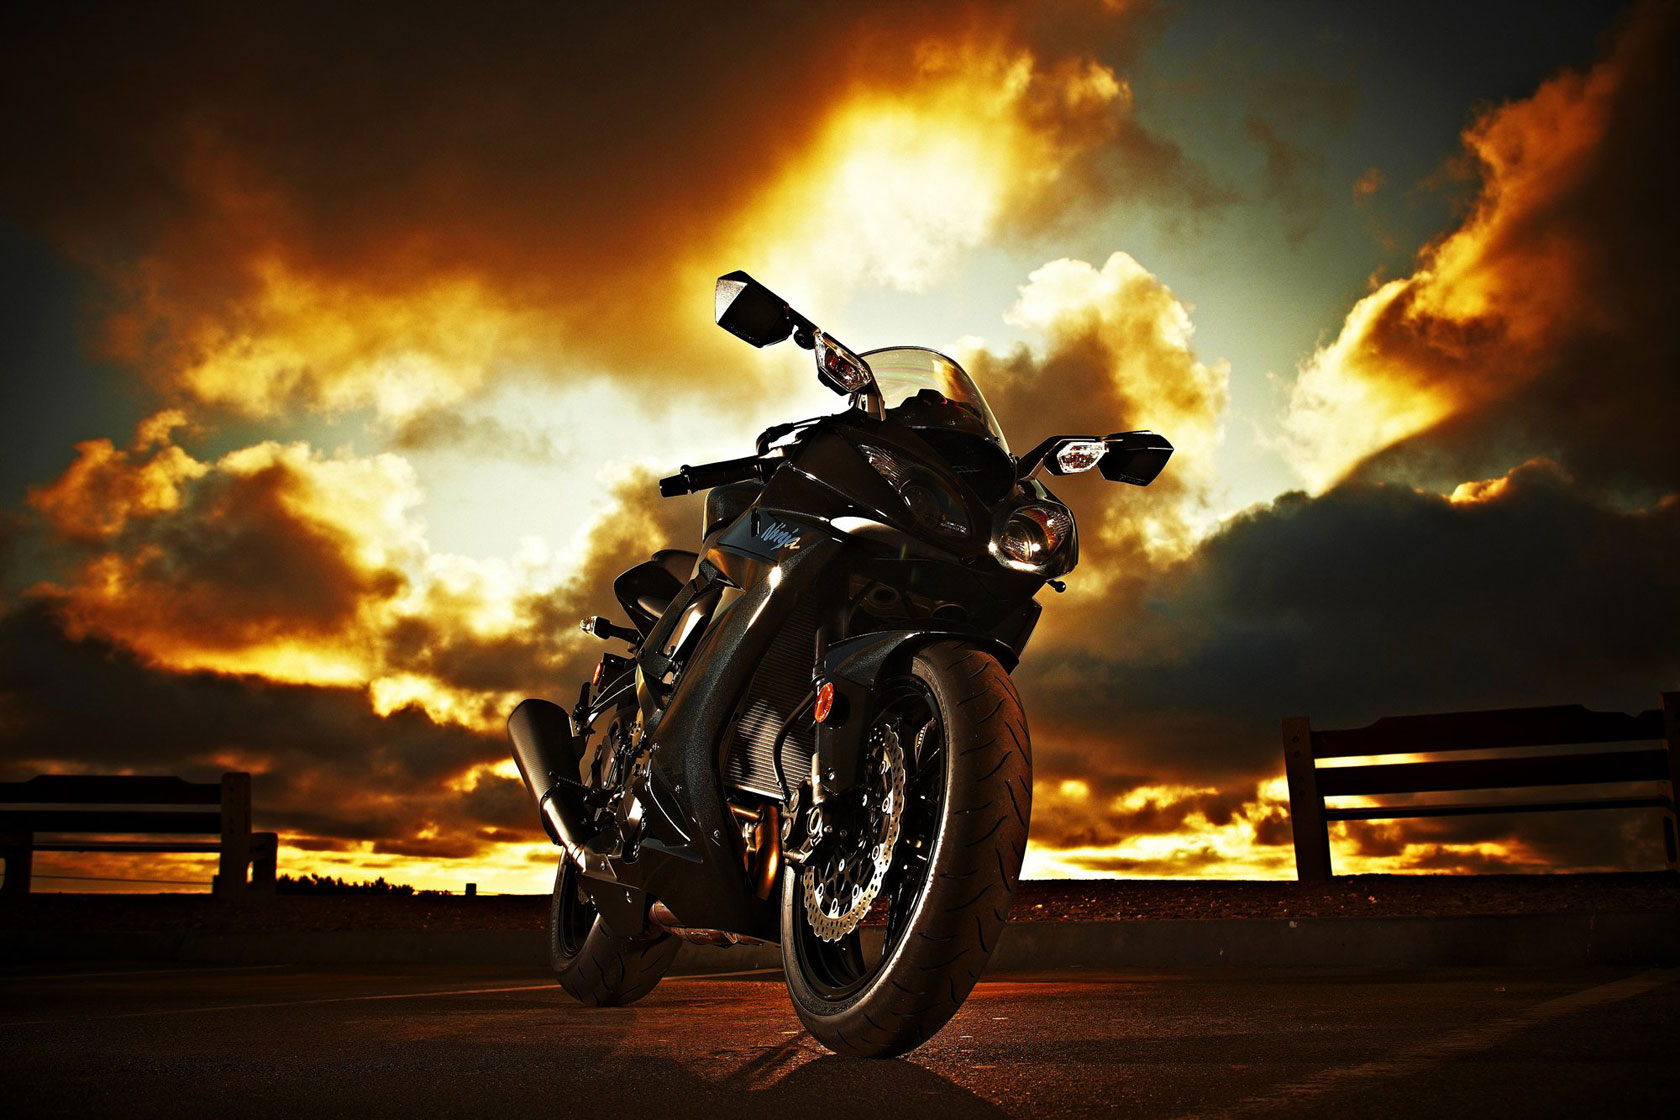 File Name 856758 HD Motorcycle Wallpapers Download 856758 1680x1120